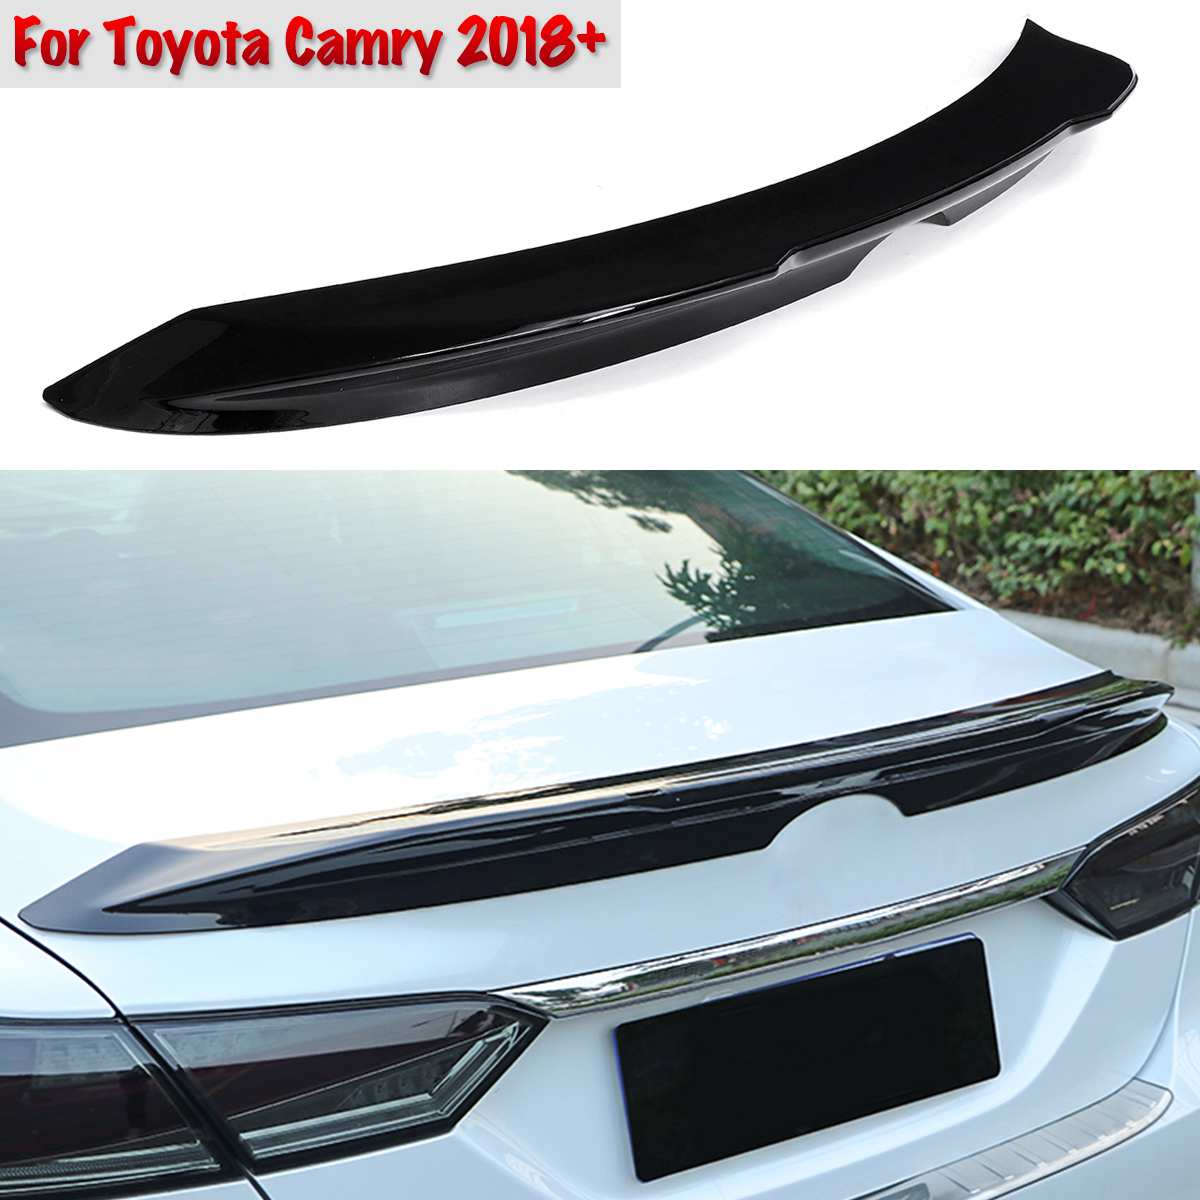 For Toyota Camry 2018+ Glossy Black  ABS Duckbill Rear Trunk Lid Spoiler Wing Matte Black Car Styling Auto AccessoriesFor Toyota Camry 2018+ Glossy Black  ABS Duckbill Rear Trunk Lid Spoiler Wing Matte Black Car Styling Auto Accessories